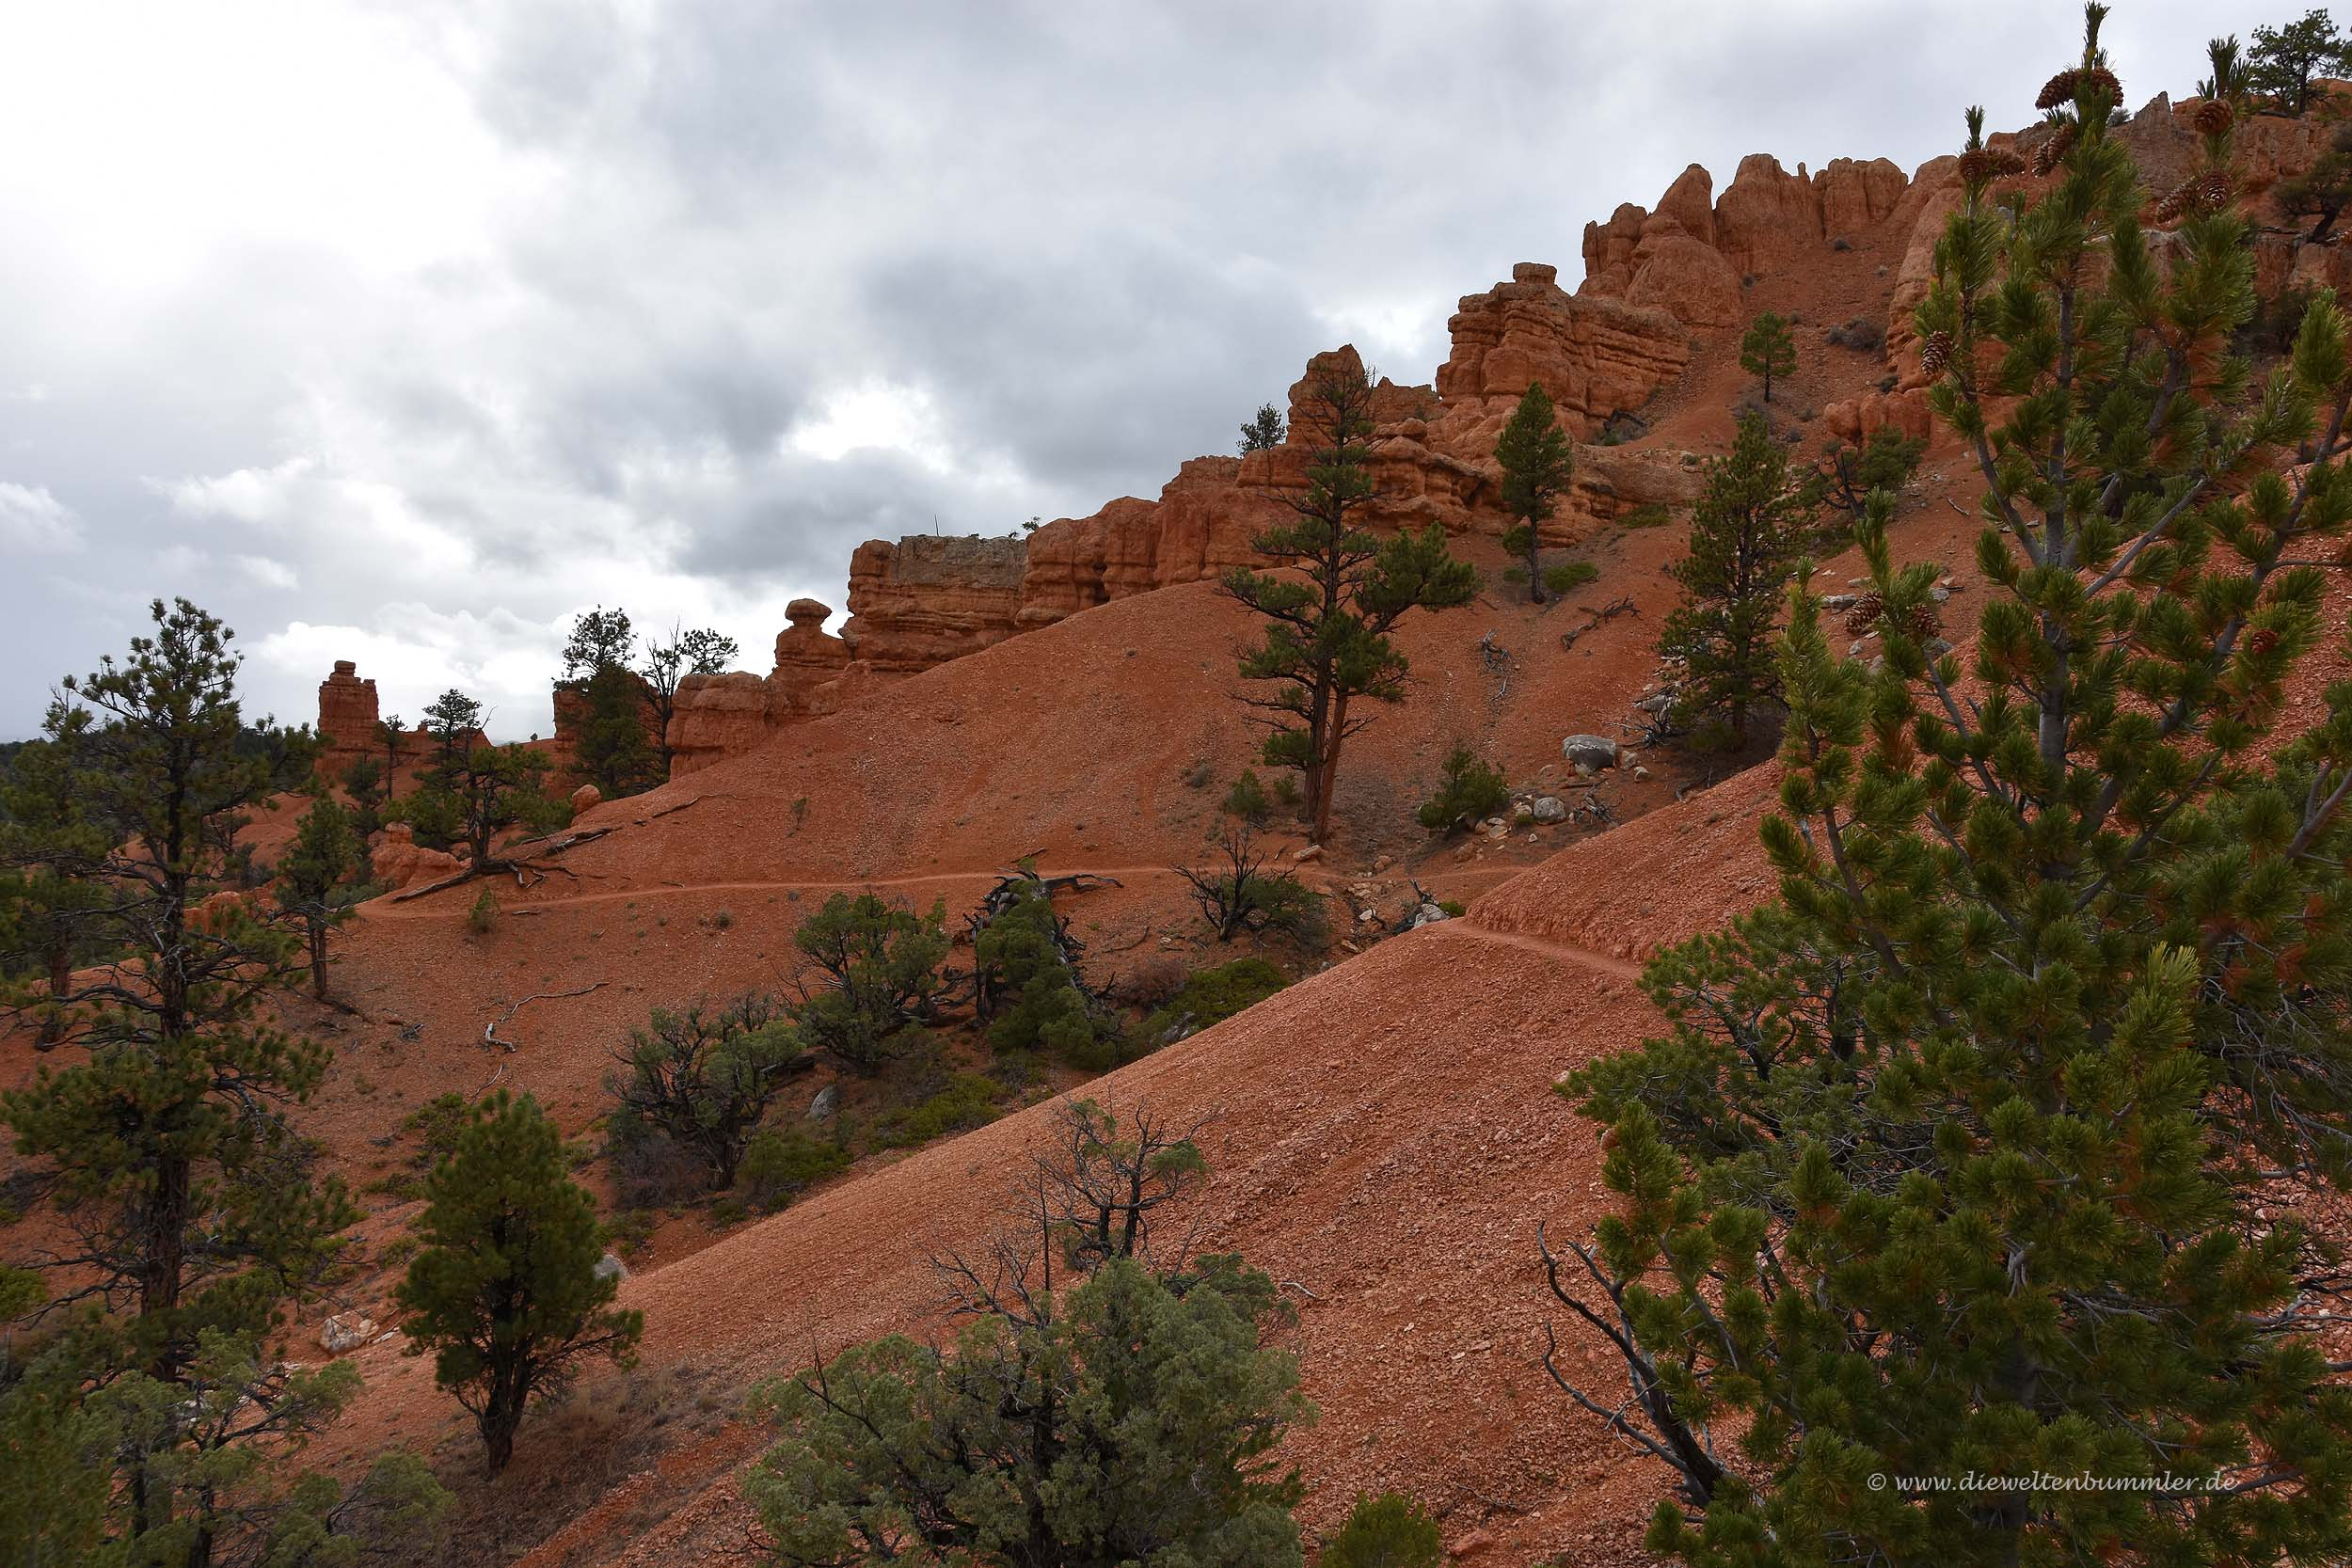 Red Canyon-Wanderweg